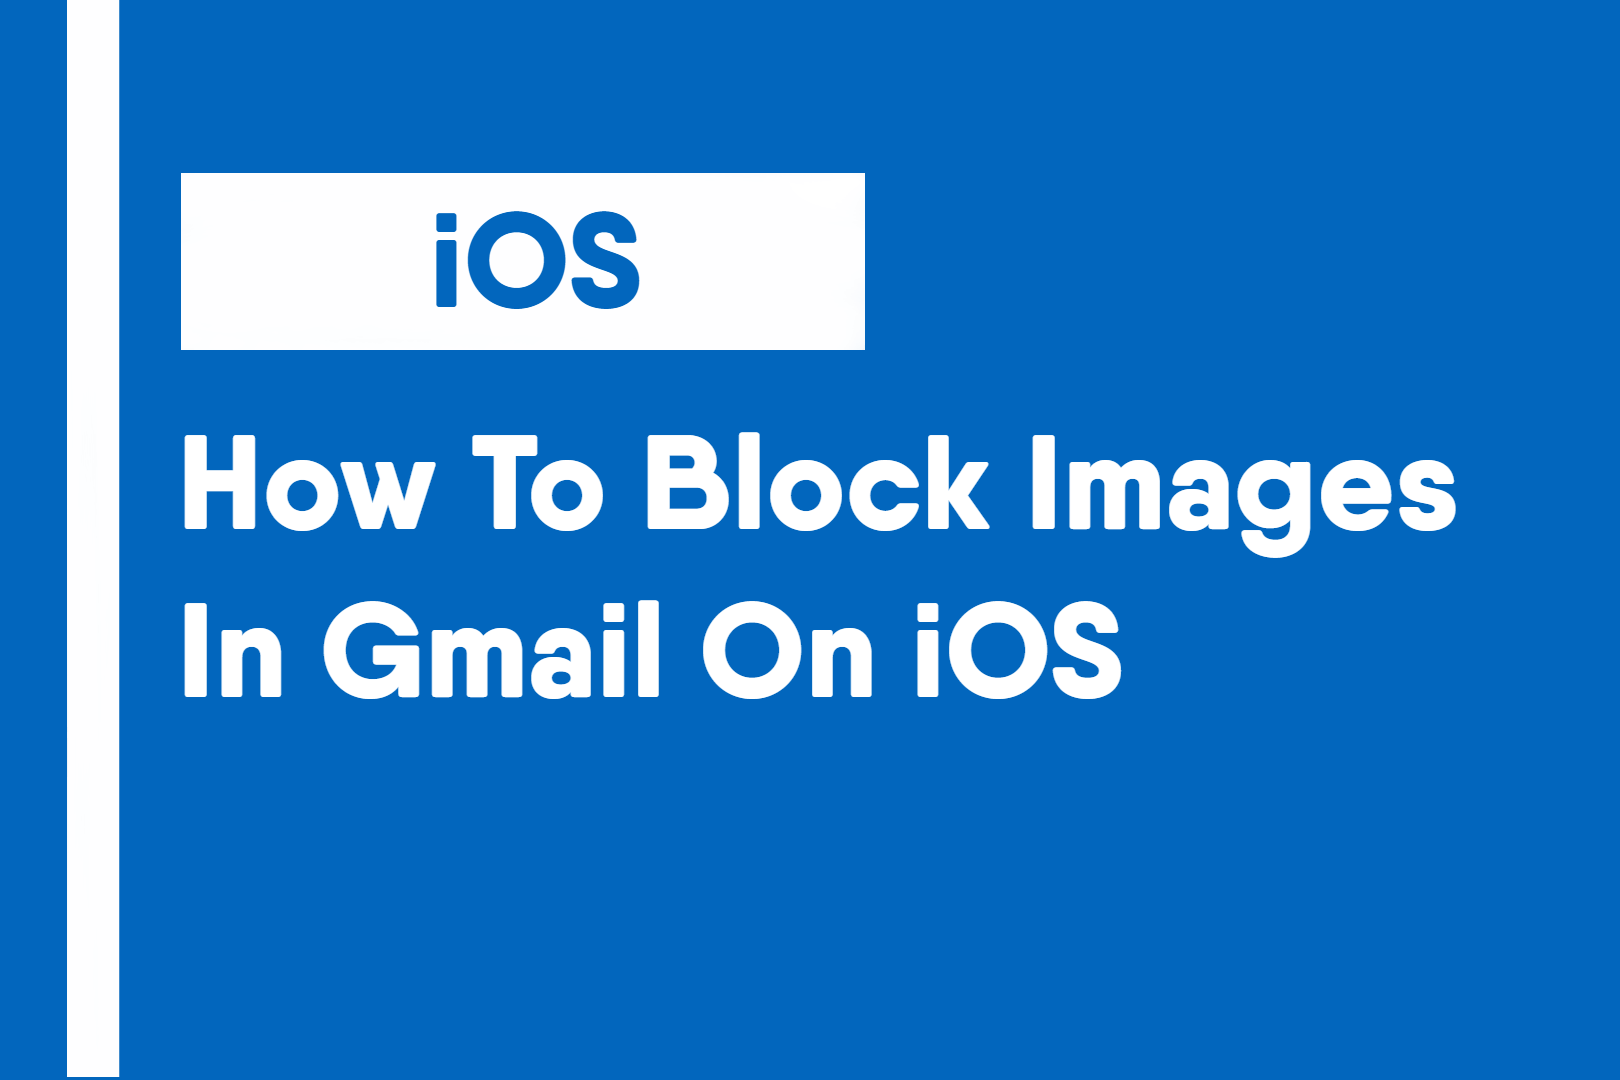 How To Block Images In Gmail On iOS